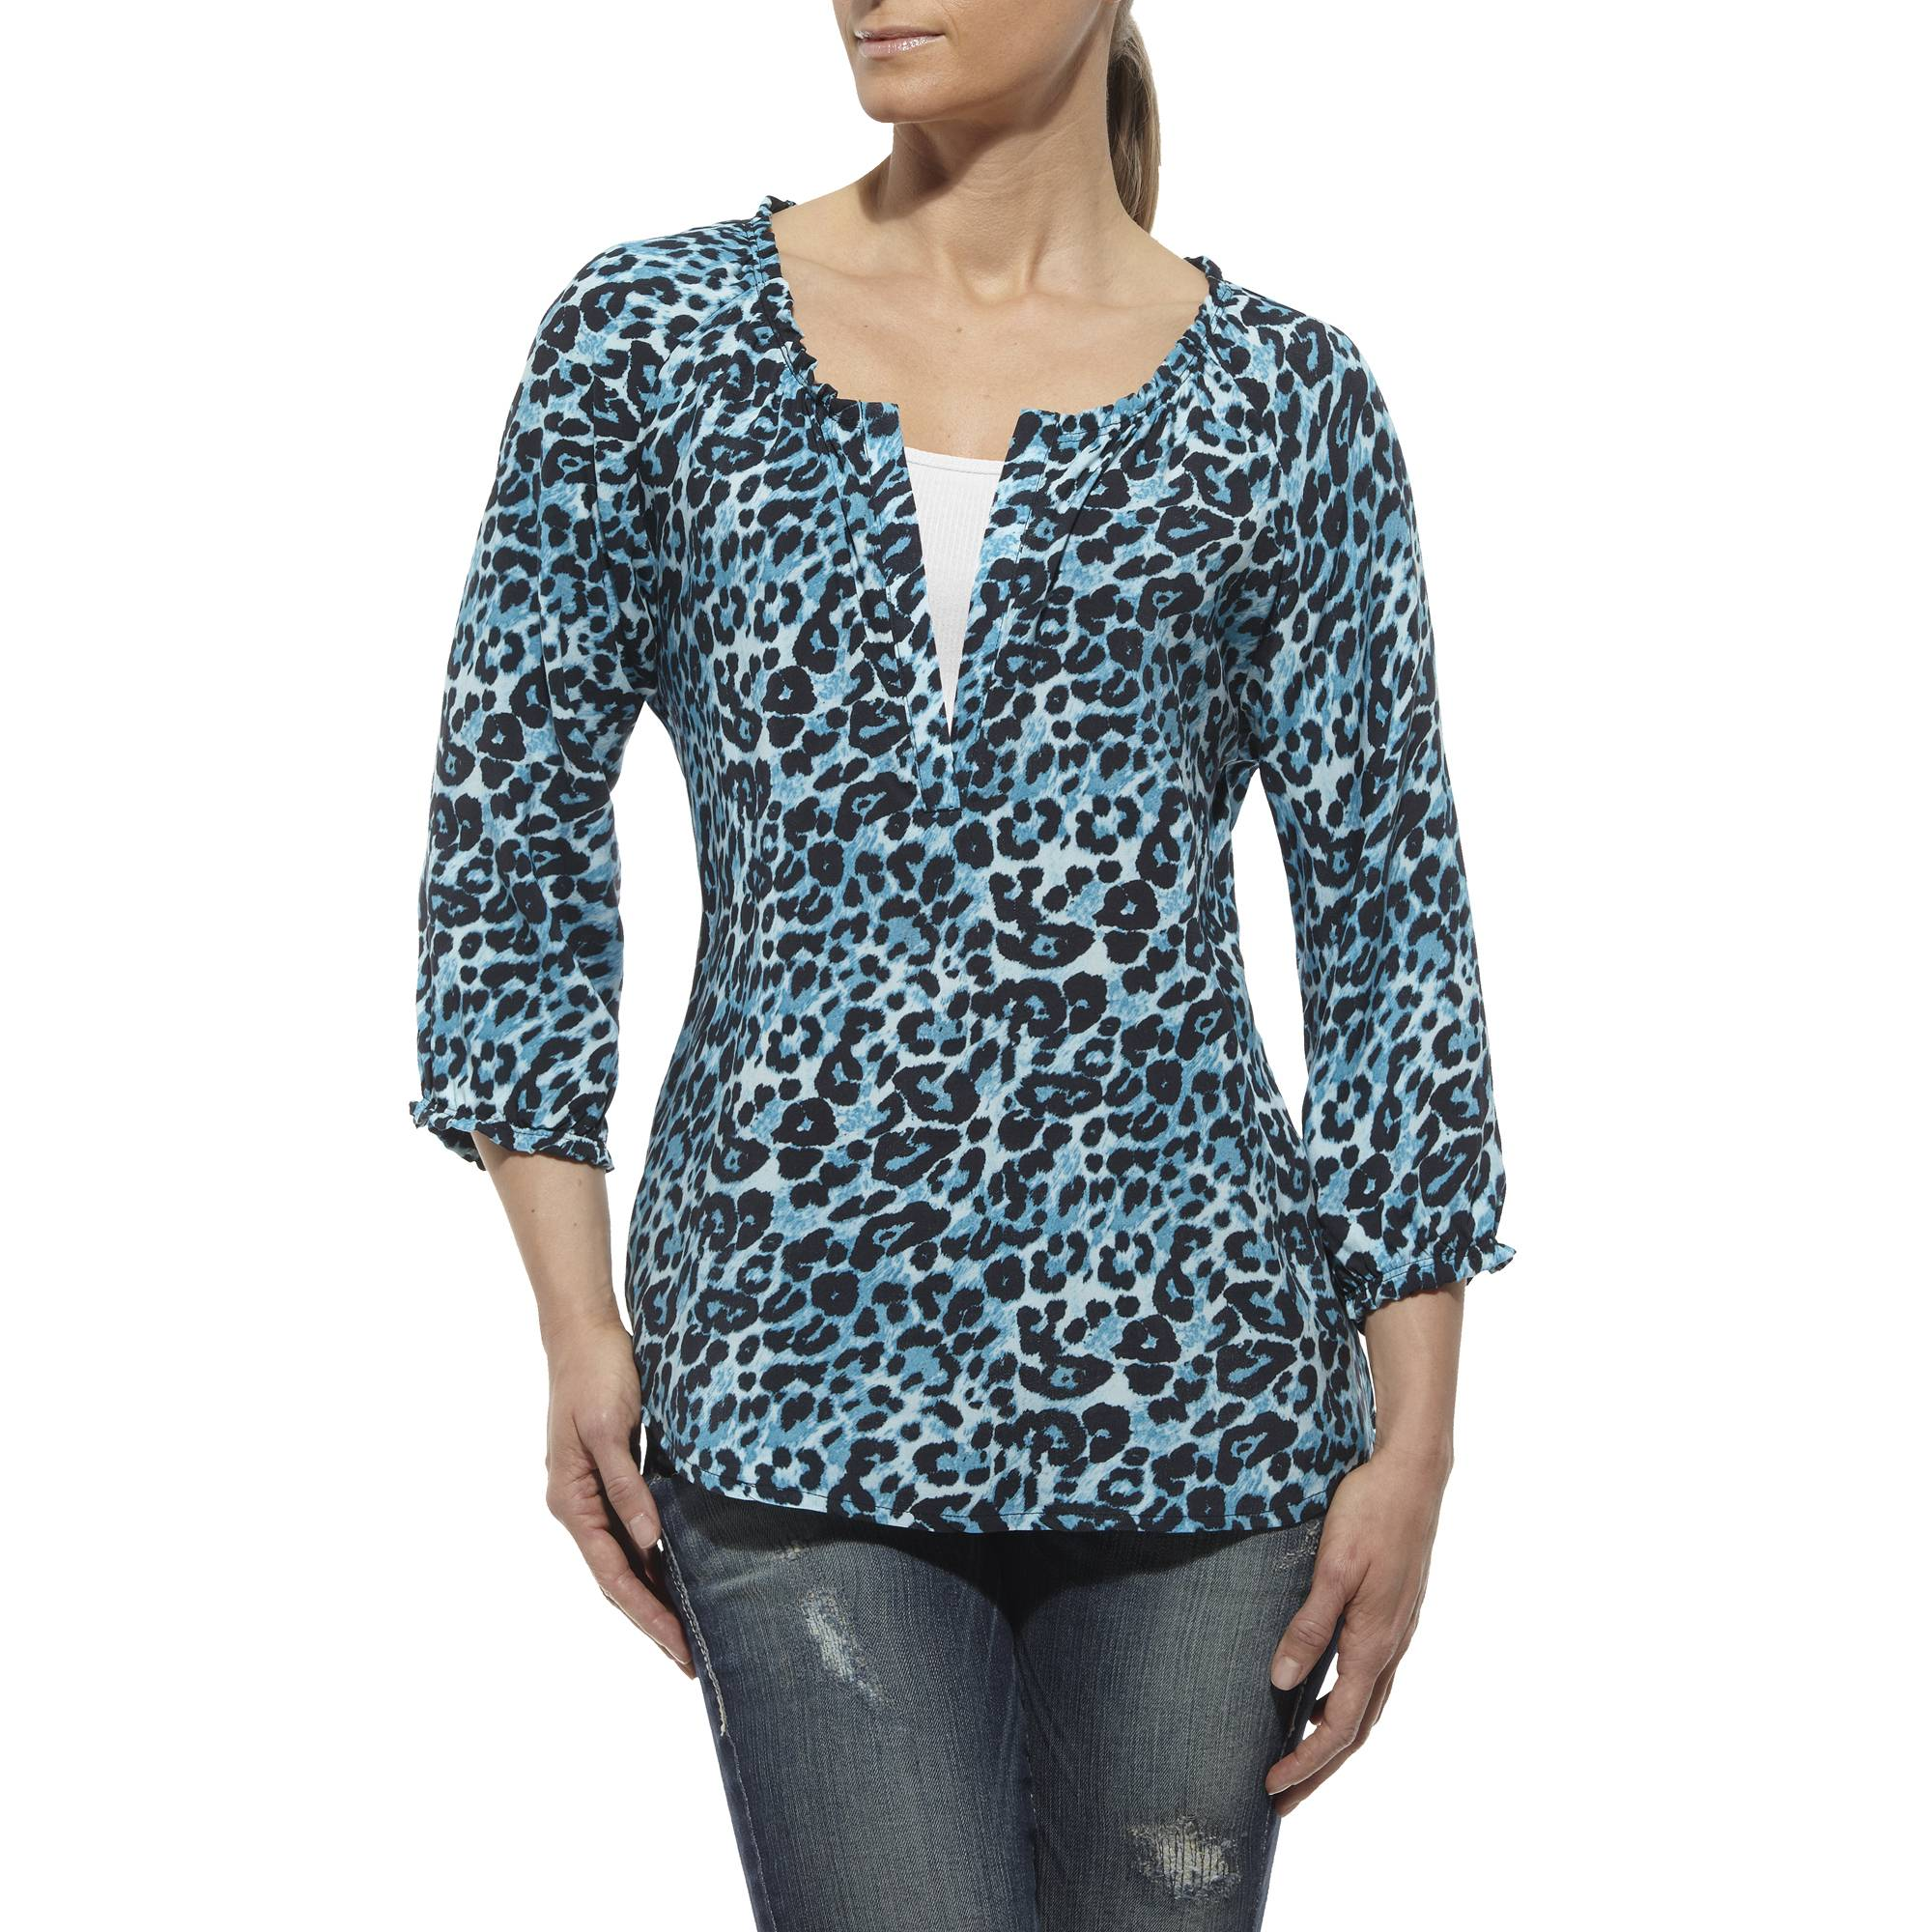 ARIAT Women's Susie Top